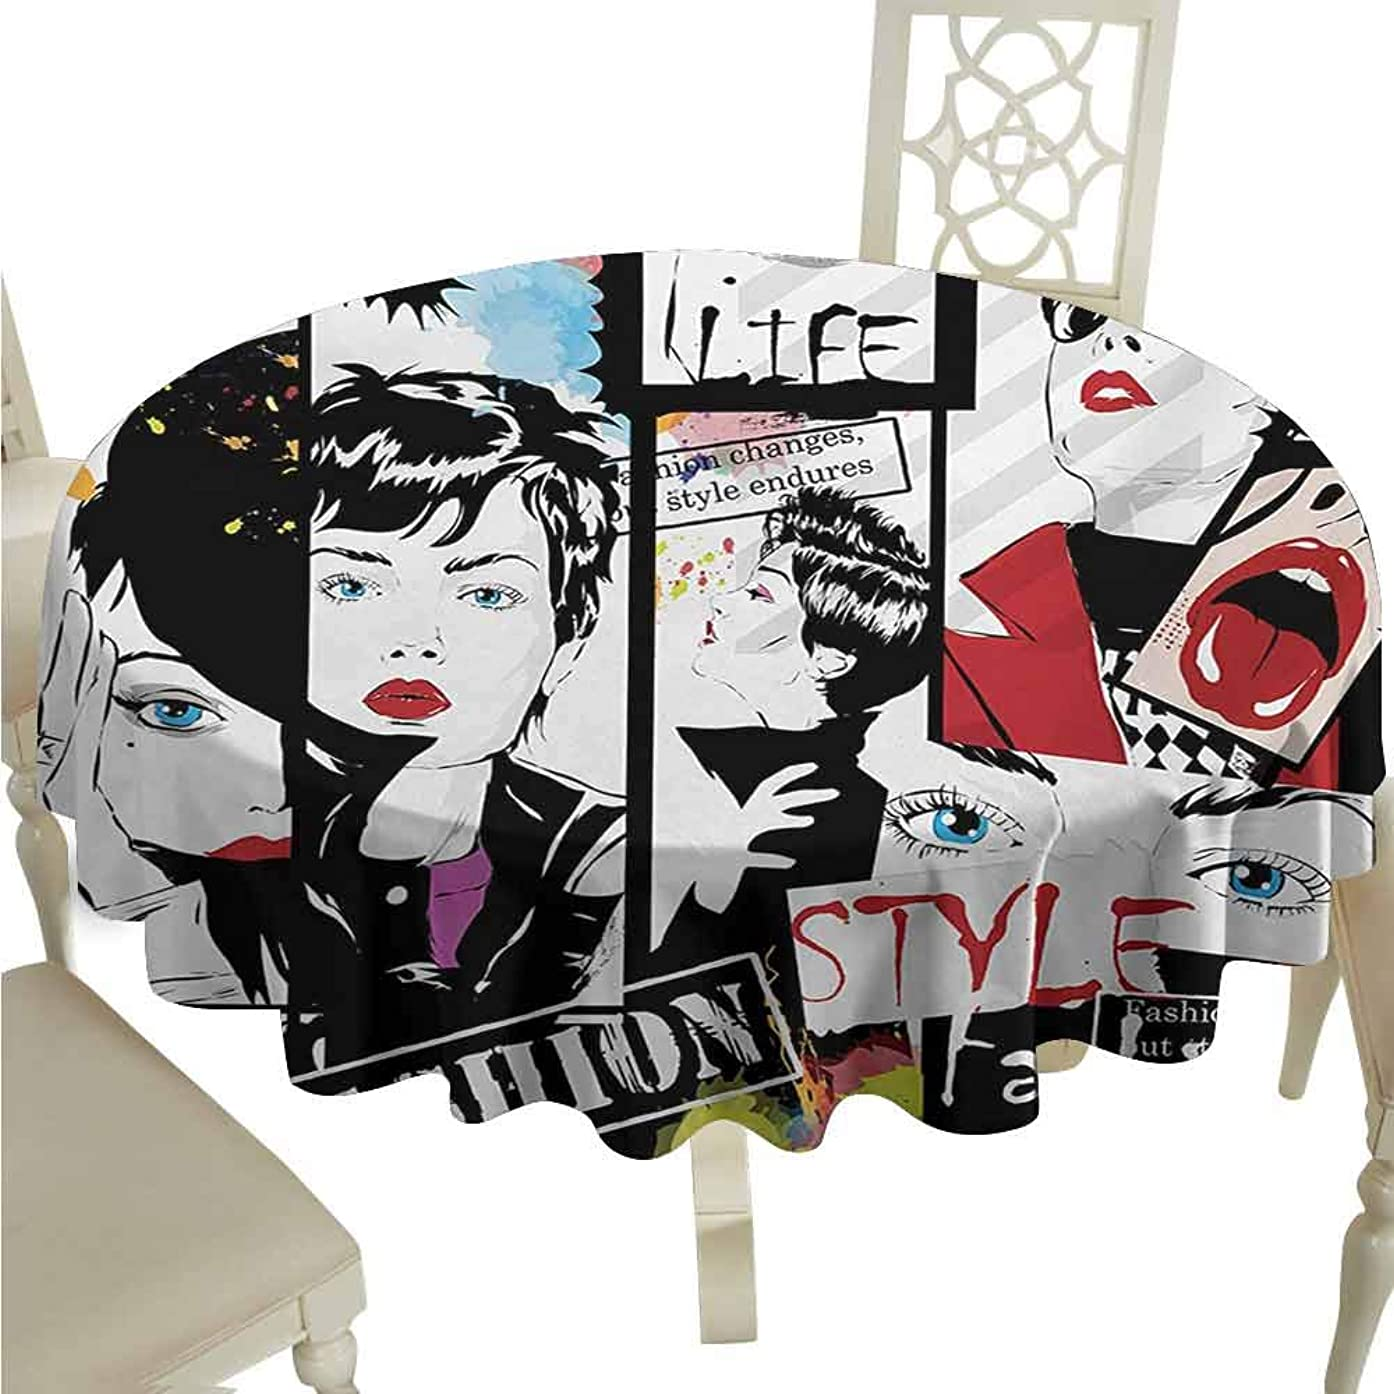 duommhome Teen Girls Waterproof Tablecloth Fashion Girl in Sketch-Style Illustration Glamour Modern Model Portrait Art Print Easy Care D51 Red Black